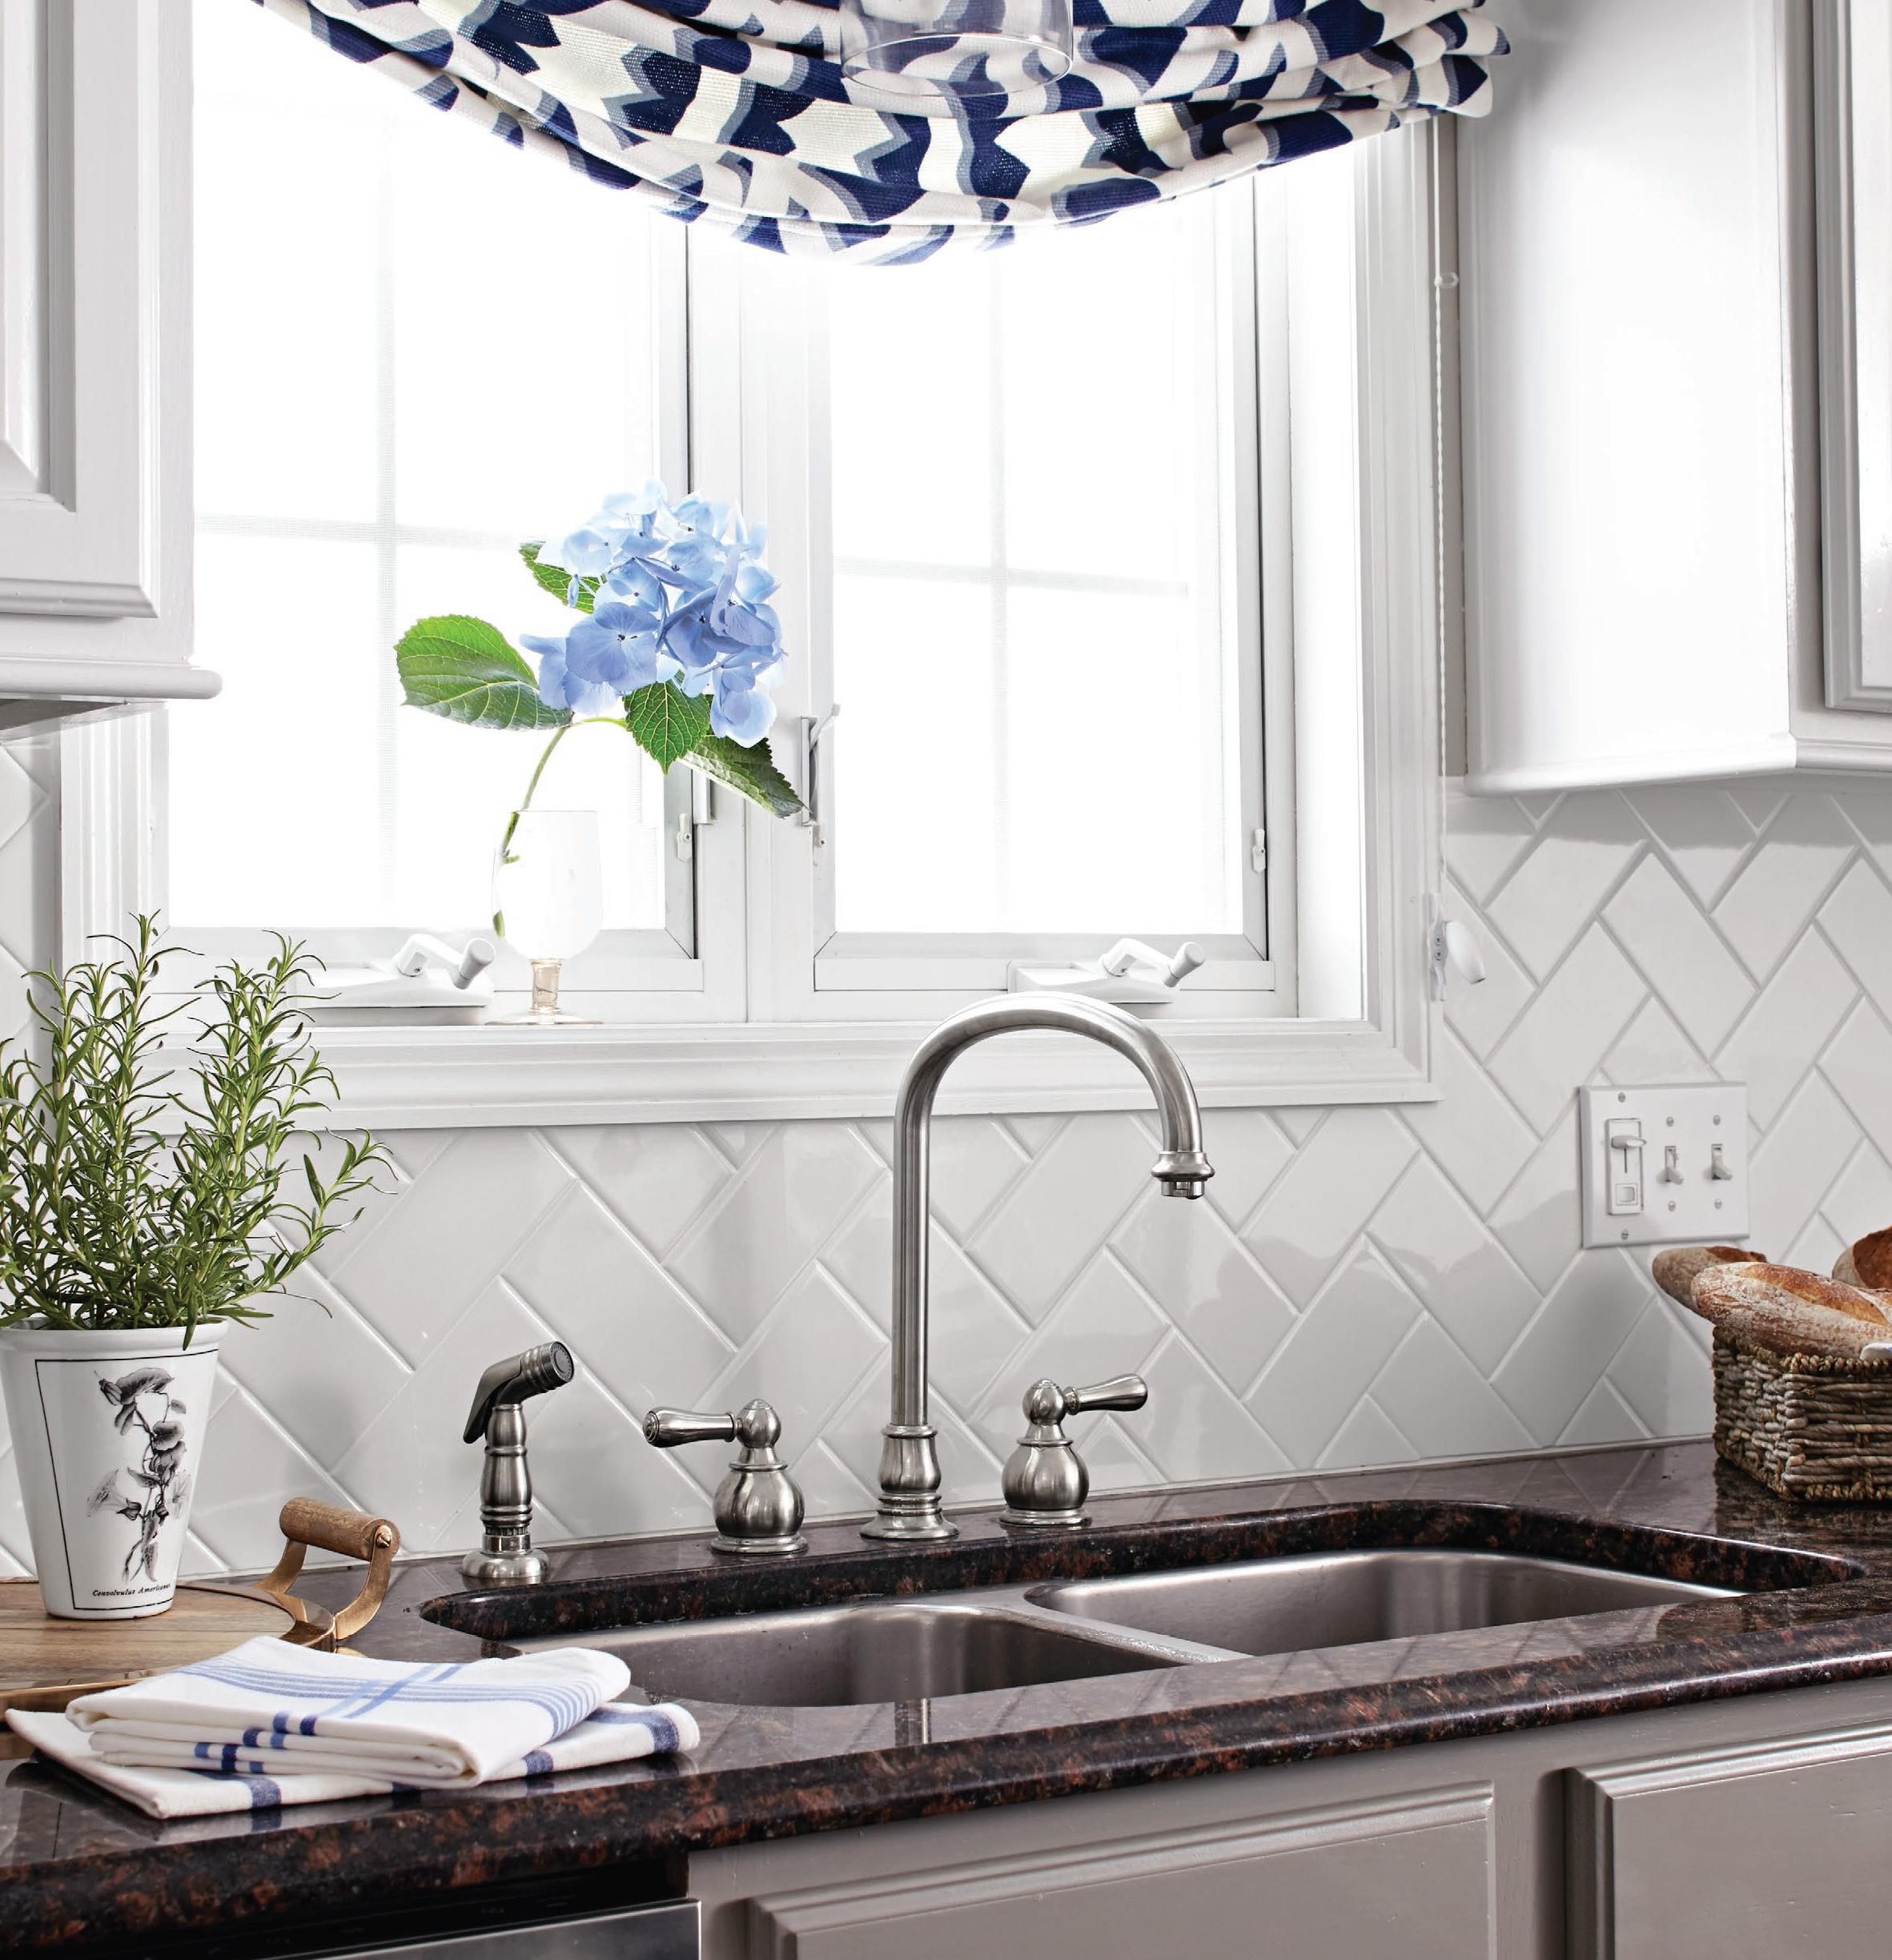 kitchen with tile backsplash kitchen tile backsplash options inspirational ideas 7356